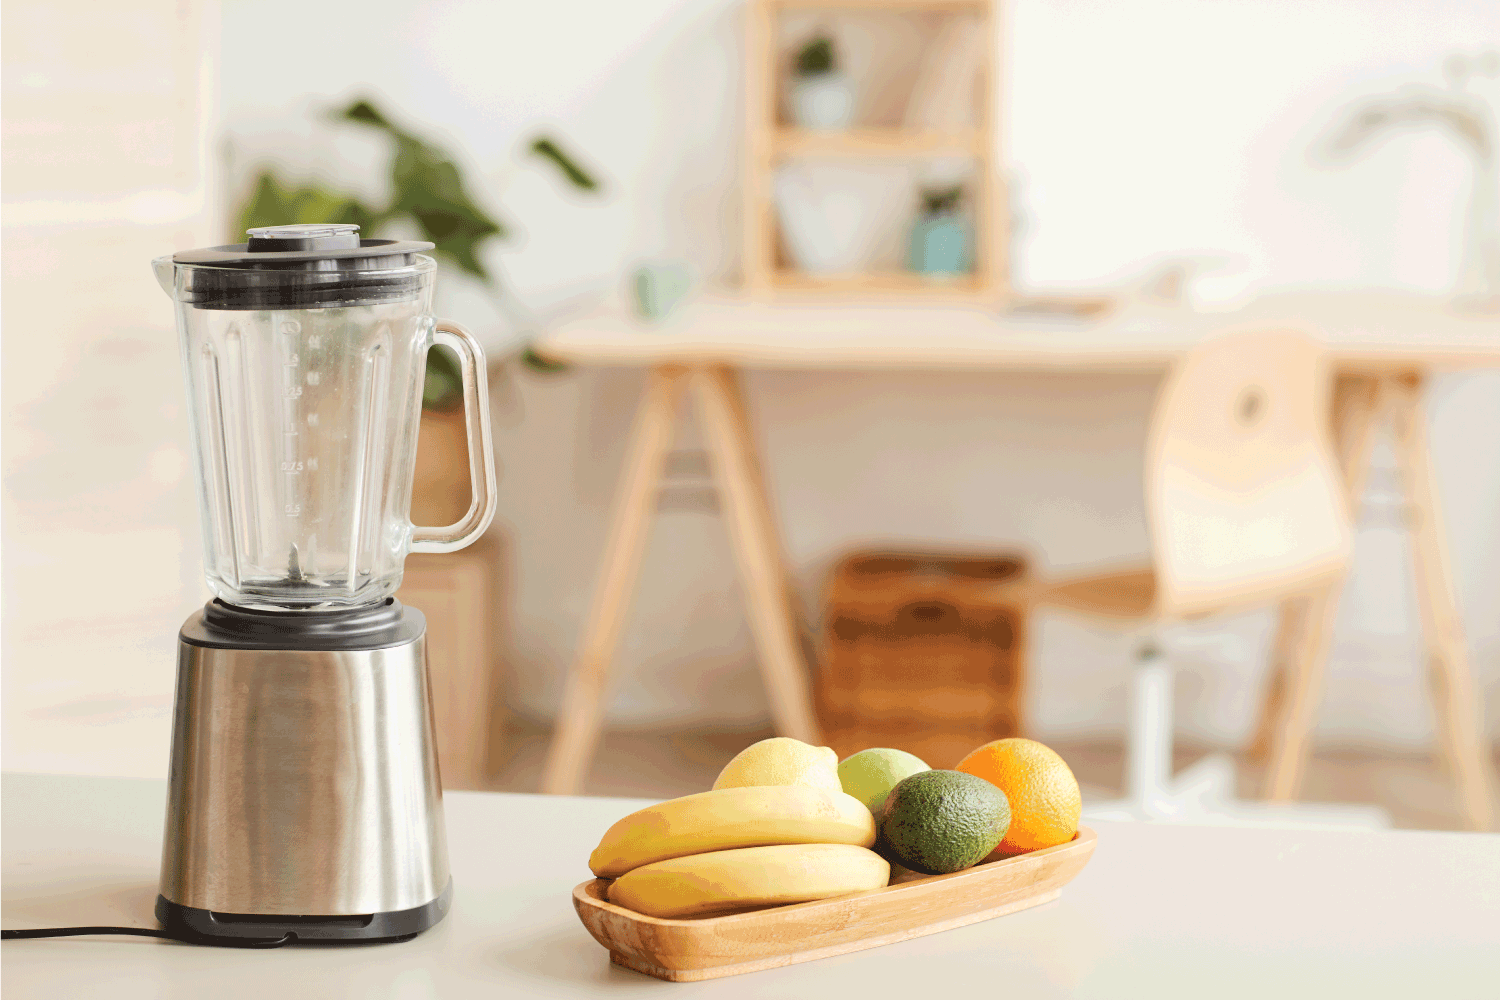 Image of fresh fruits prepared for cocktail with blender standing on the table in the kitchen